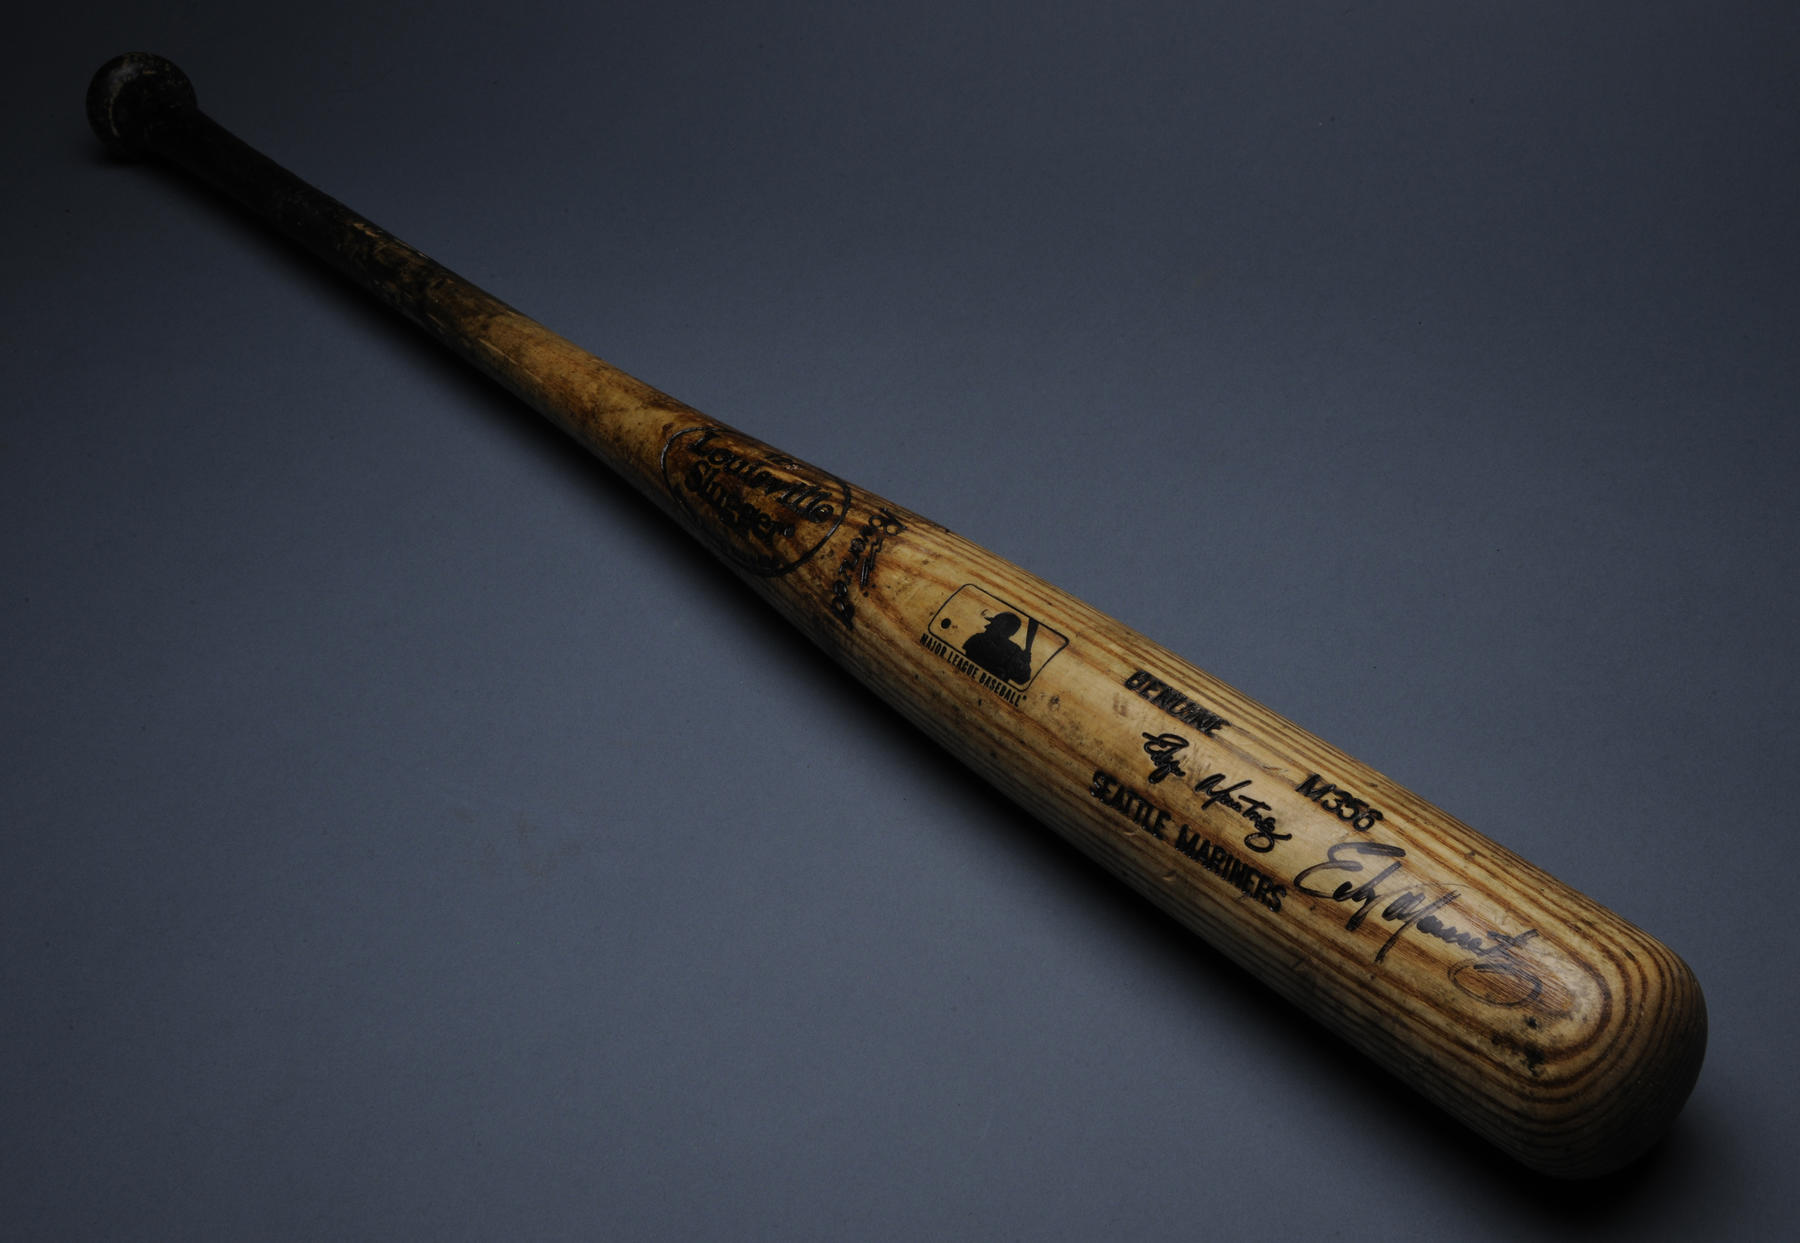 Edgar Martinez of the Mariners used this bat to drive in his 138th and 138th runs of the season with a two-run homer against the Athletics on Sept. 23, 2000. Martinez led the American League with 145 RBI that season. - B-323-2000 (Milo Stewart, Jr./National Baseball Hall of Fame)